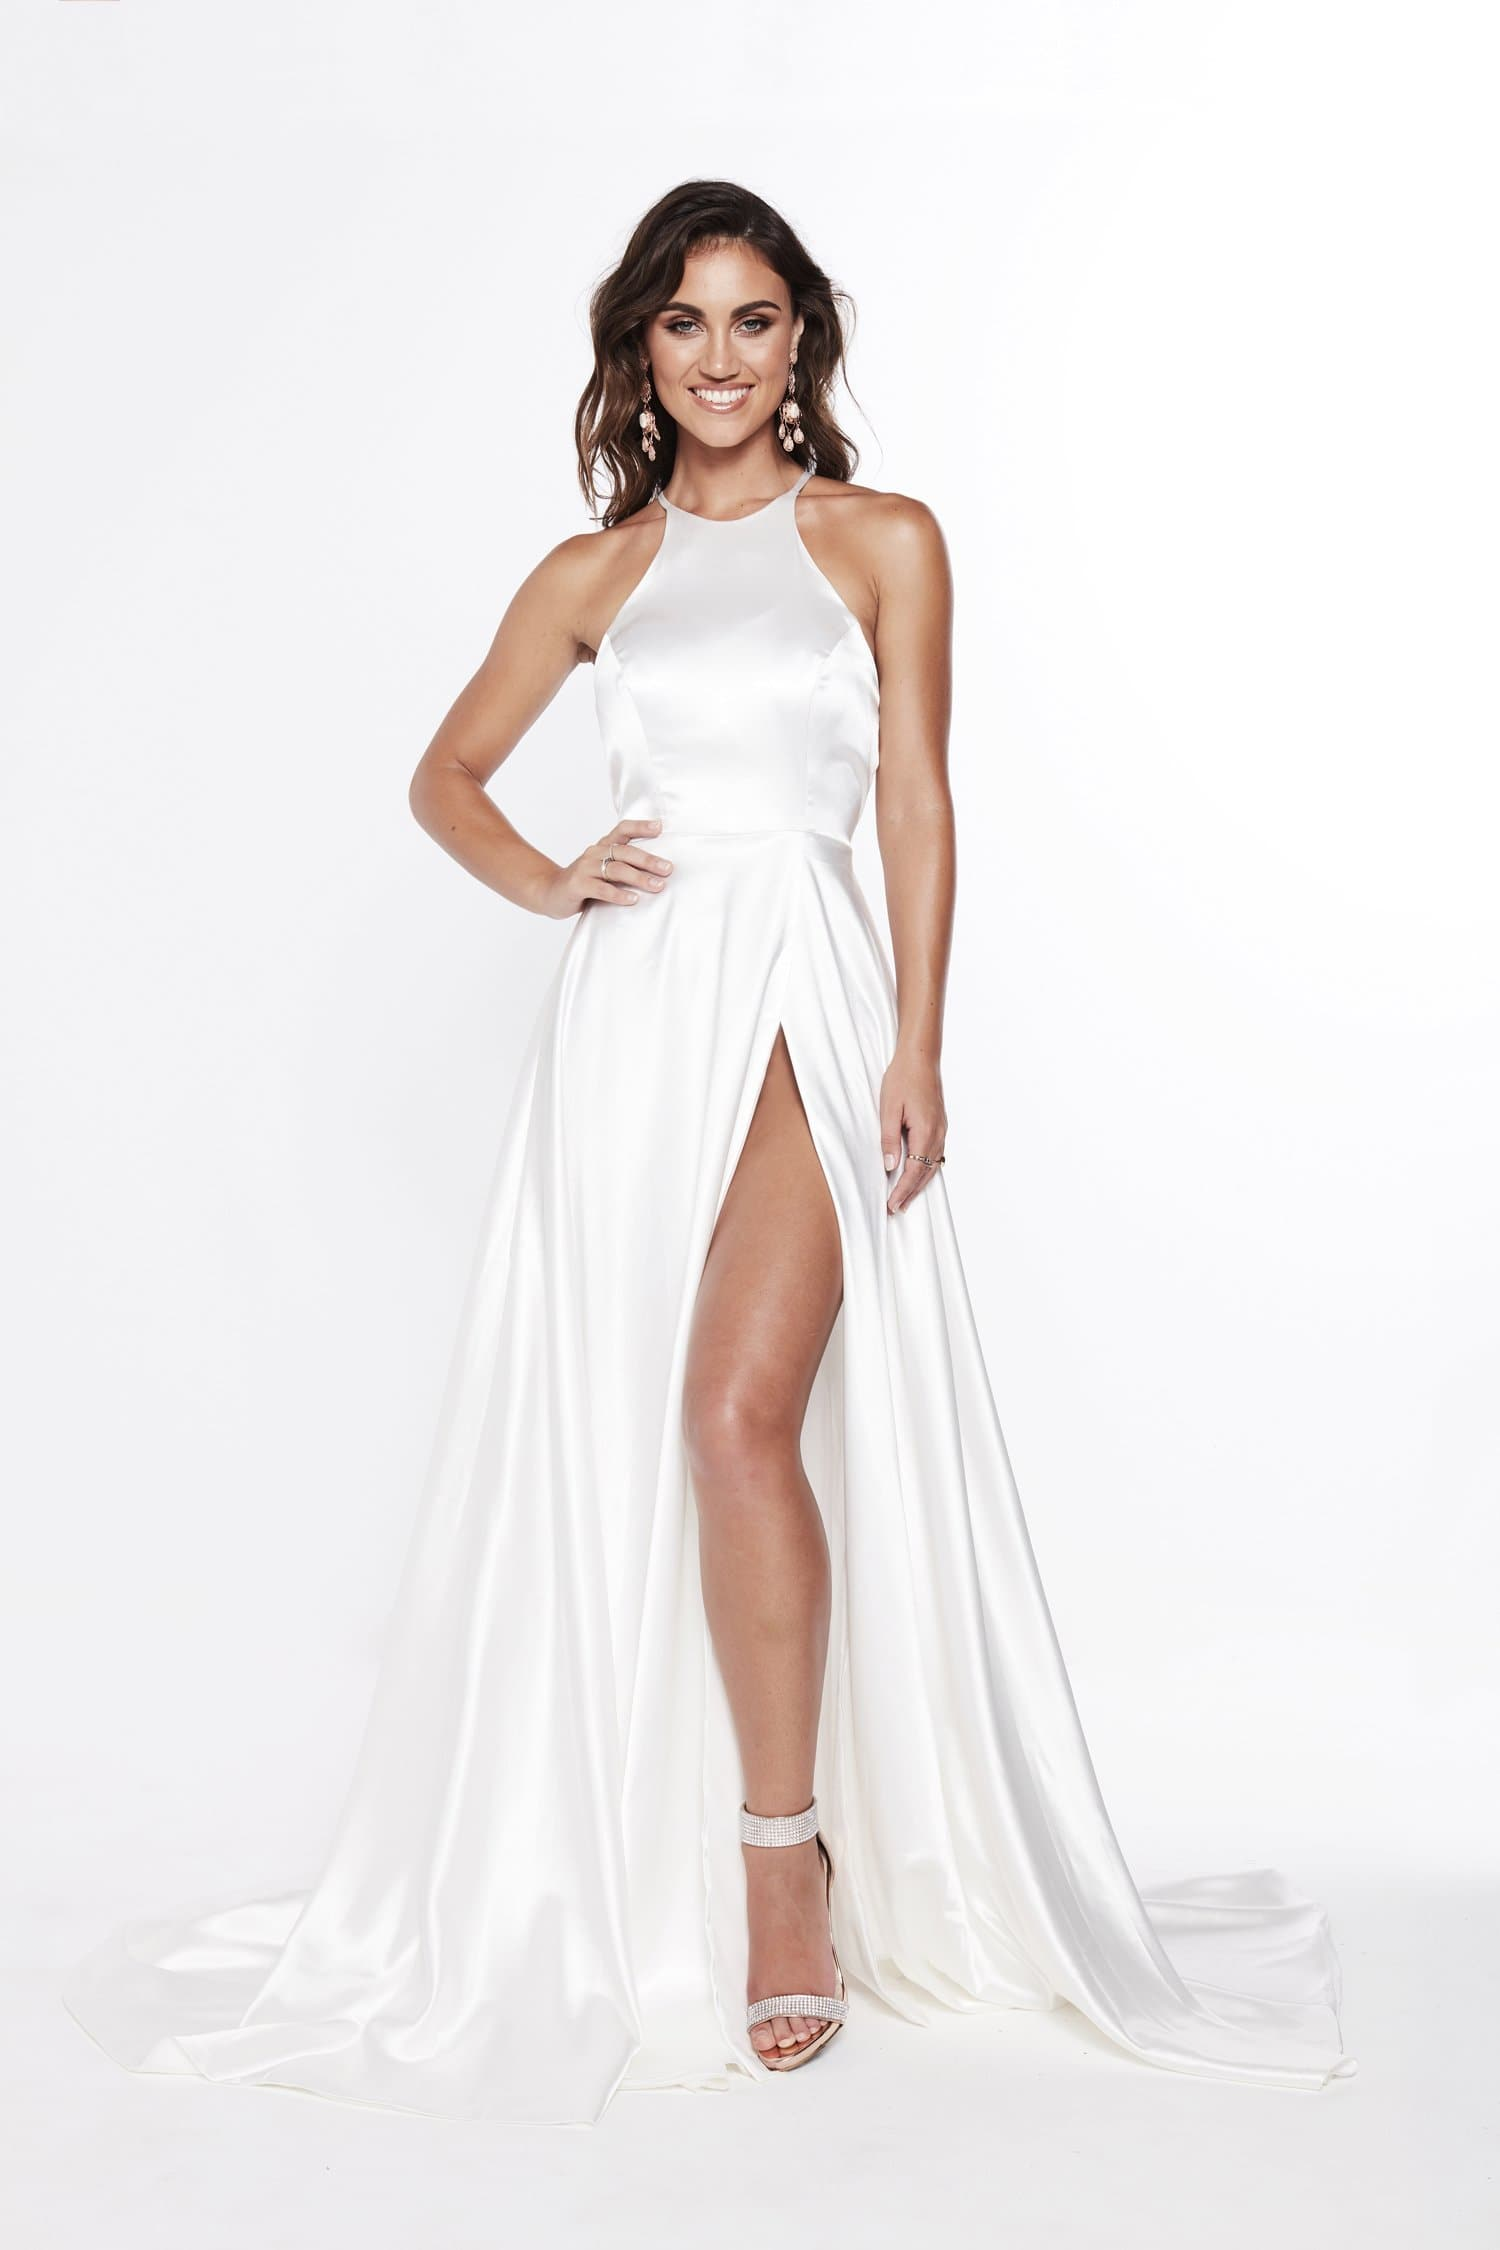 A&N Luxe Romina Satin Gown - White